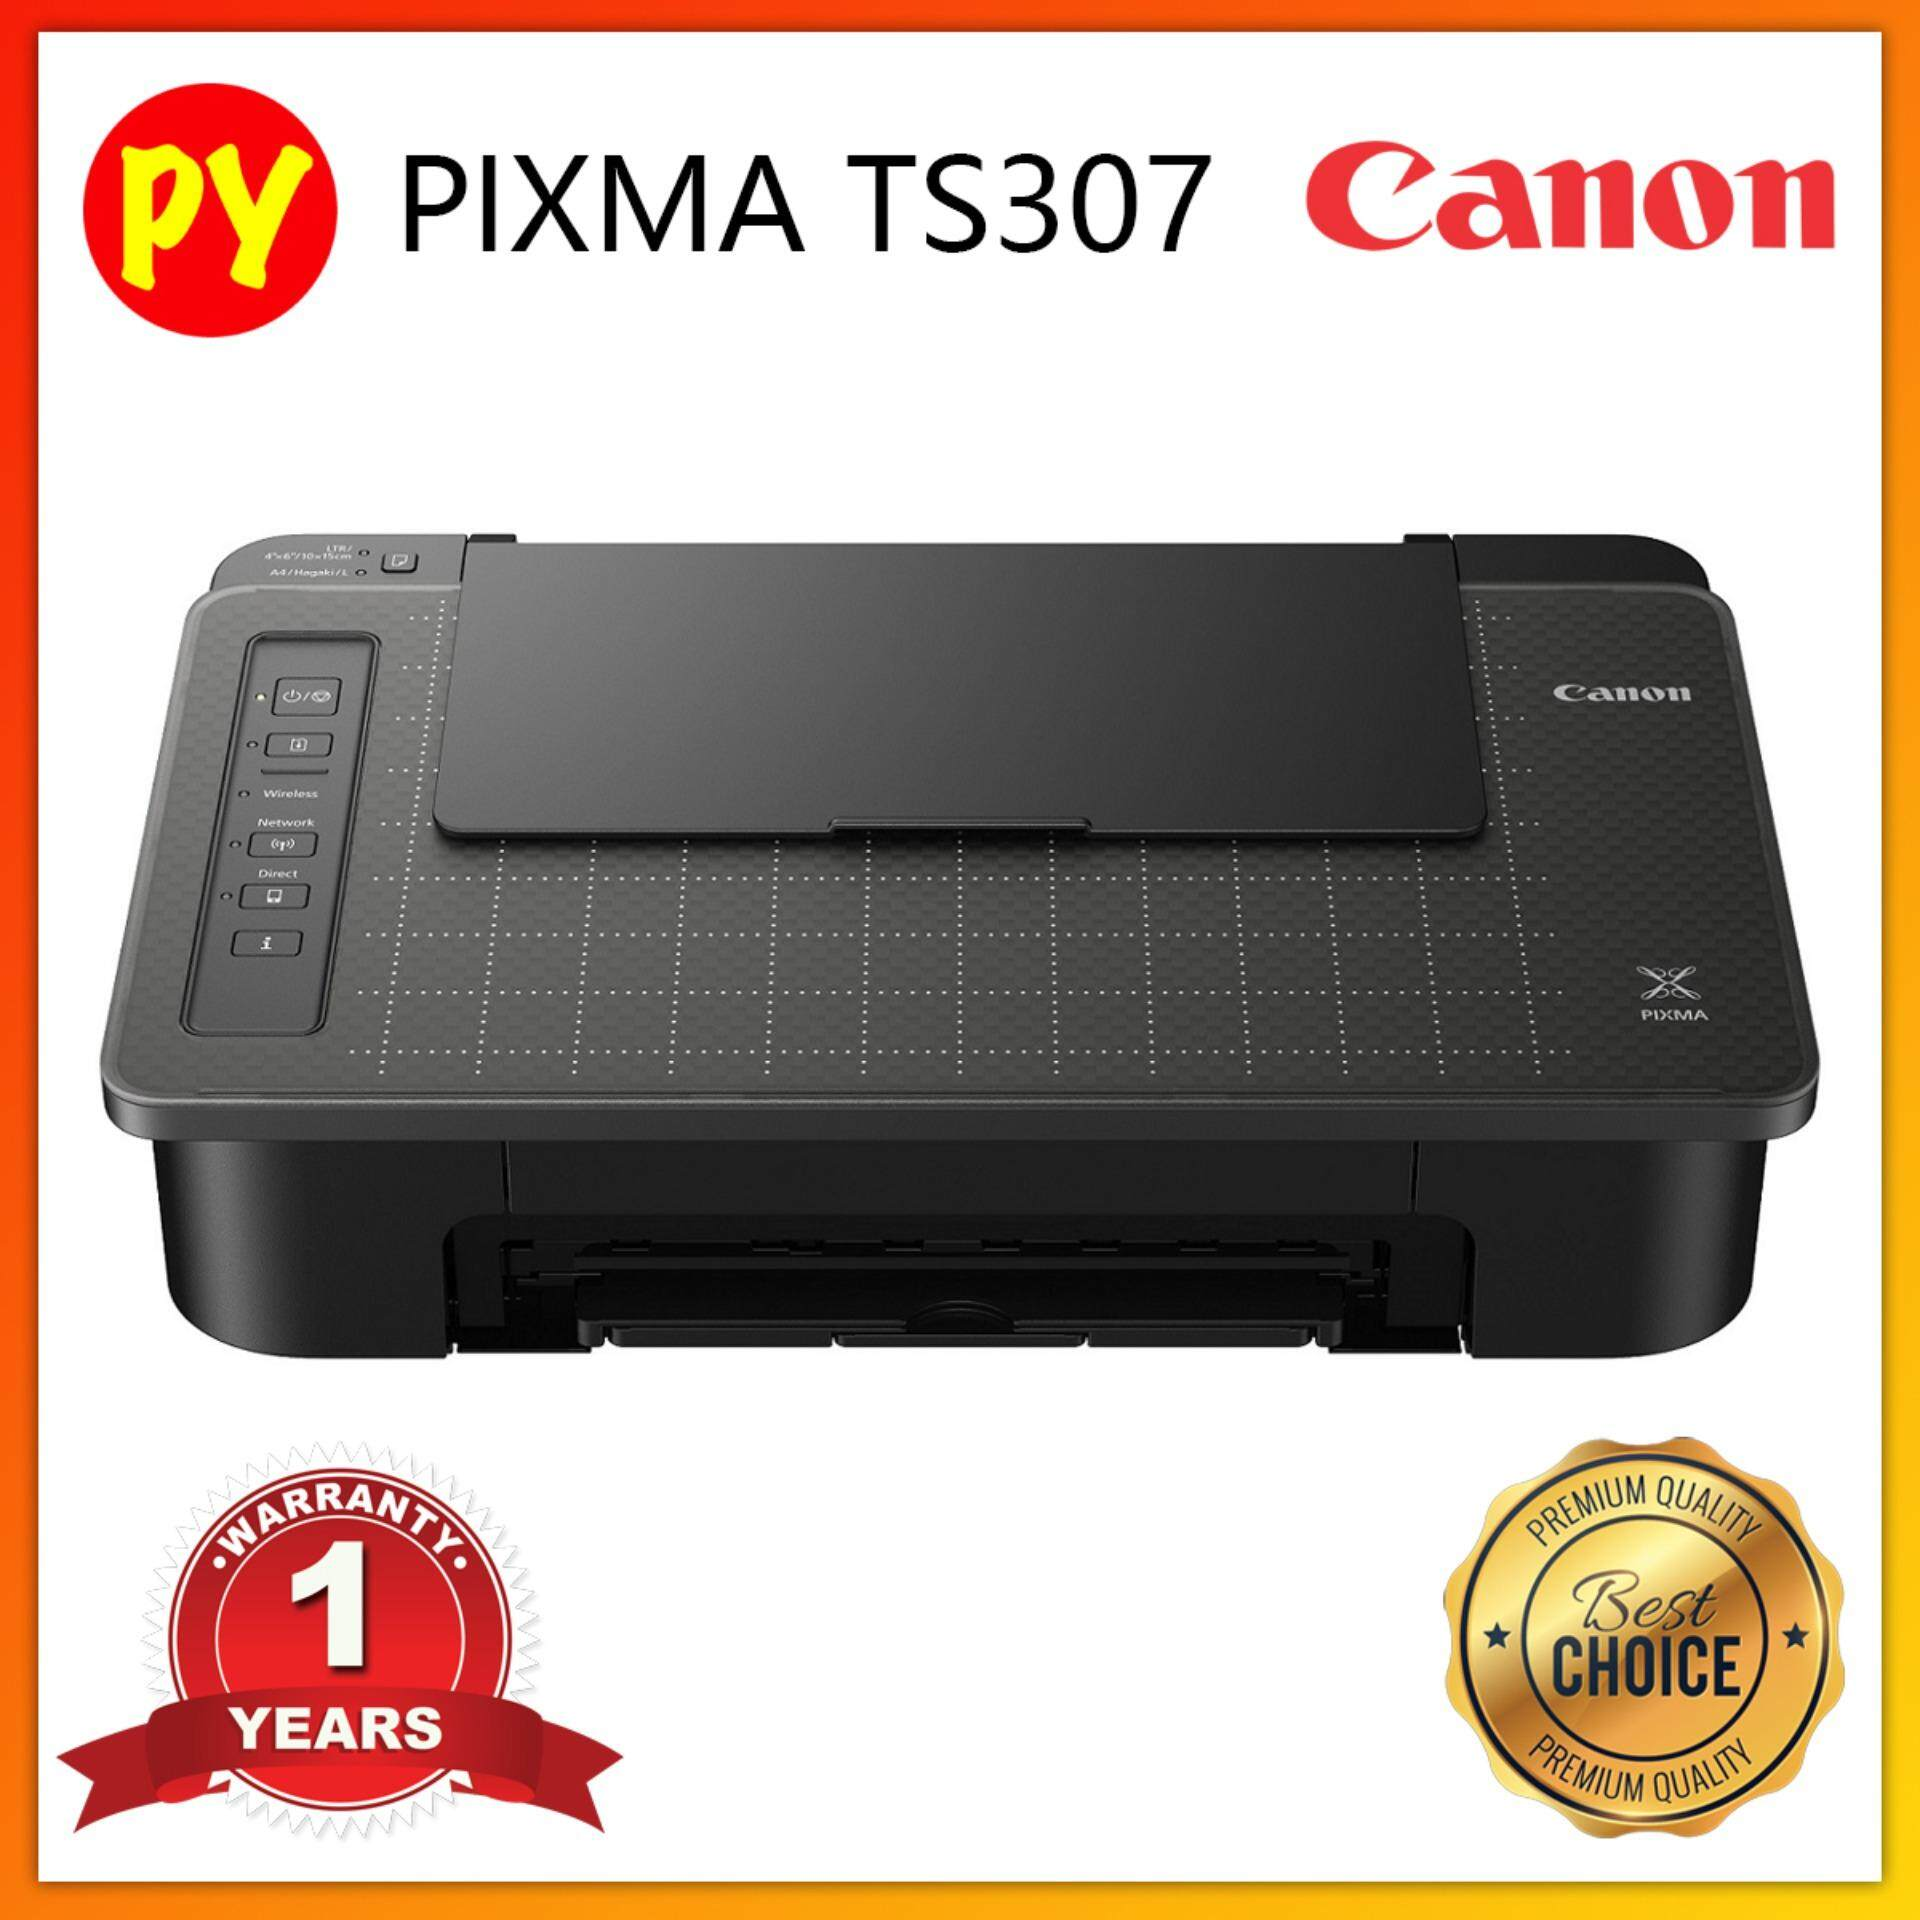 Sell Canon Pixma Mg2577s Cheapest Best Quality My Store Inkjet Printer G4010 Print Scan Copy Fax Wifi Ts307 Wifimyr159 Myr 159